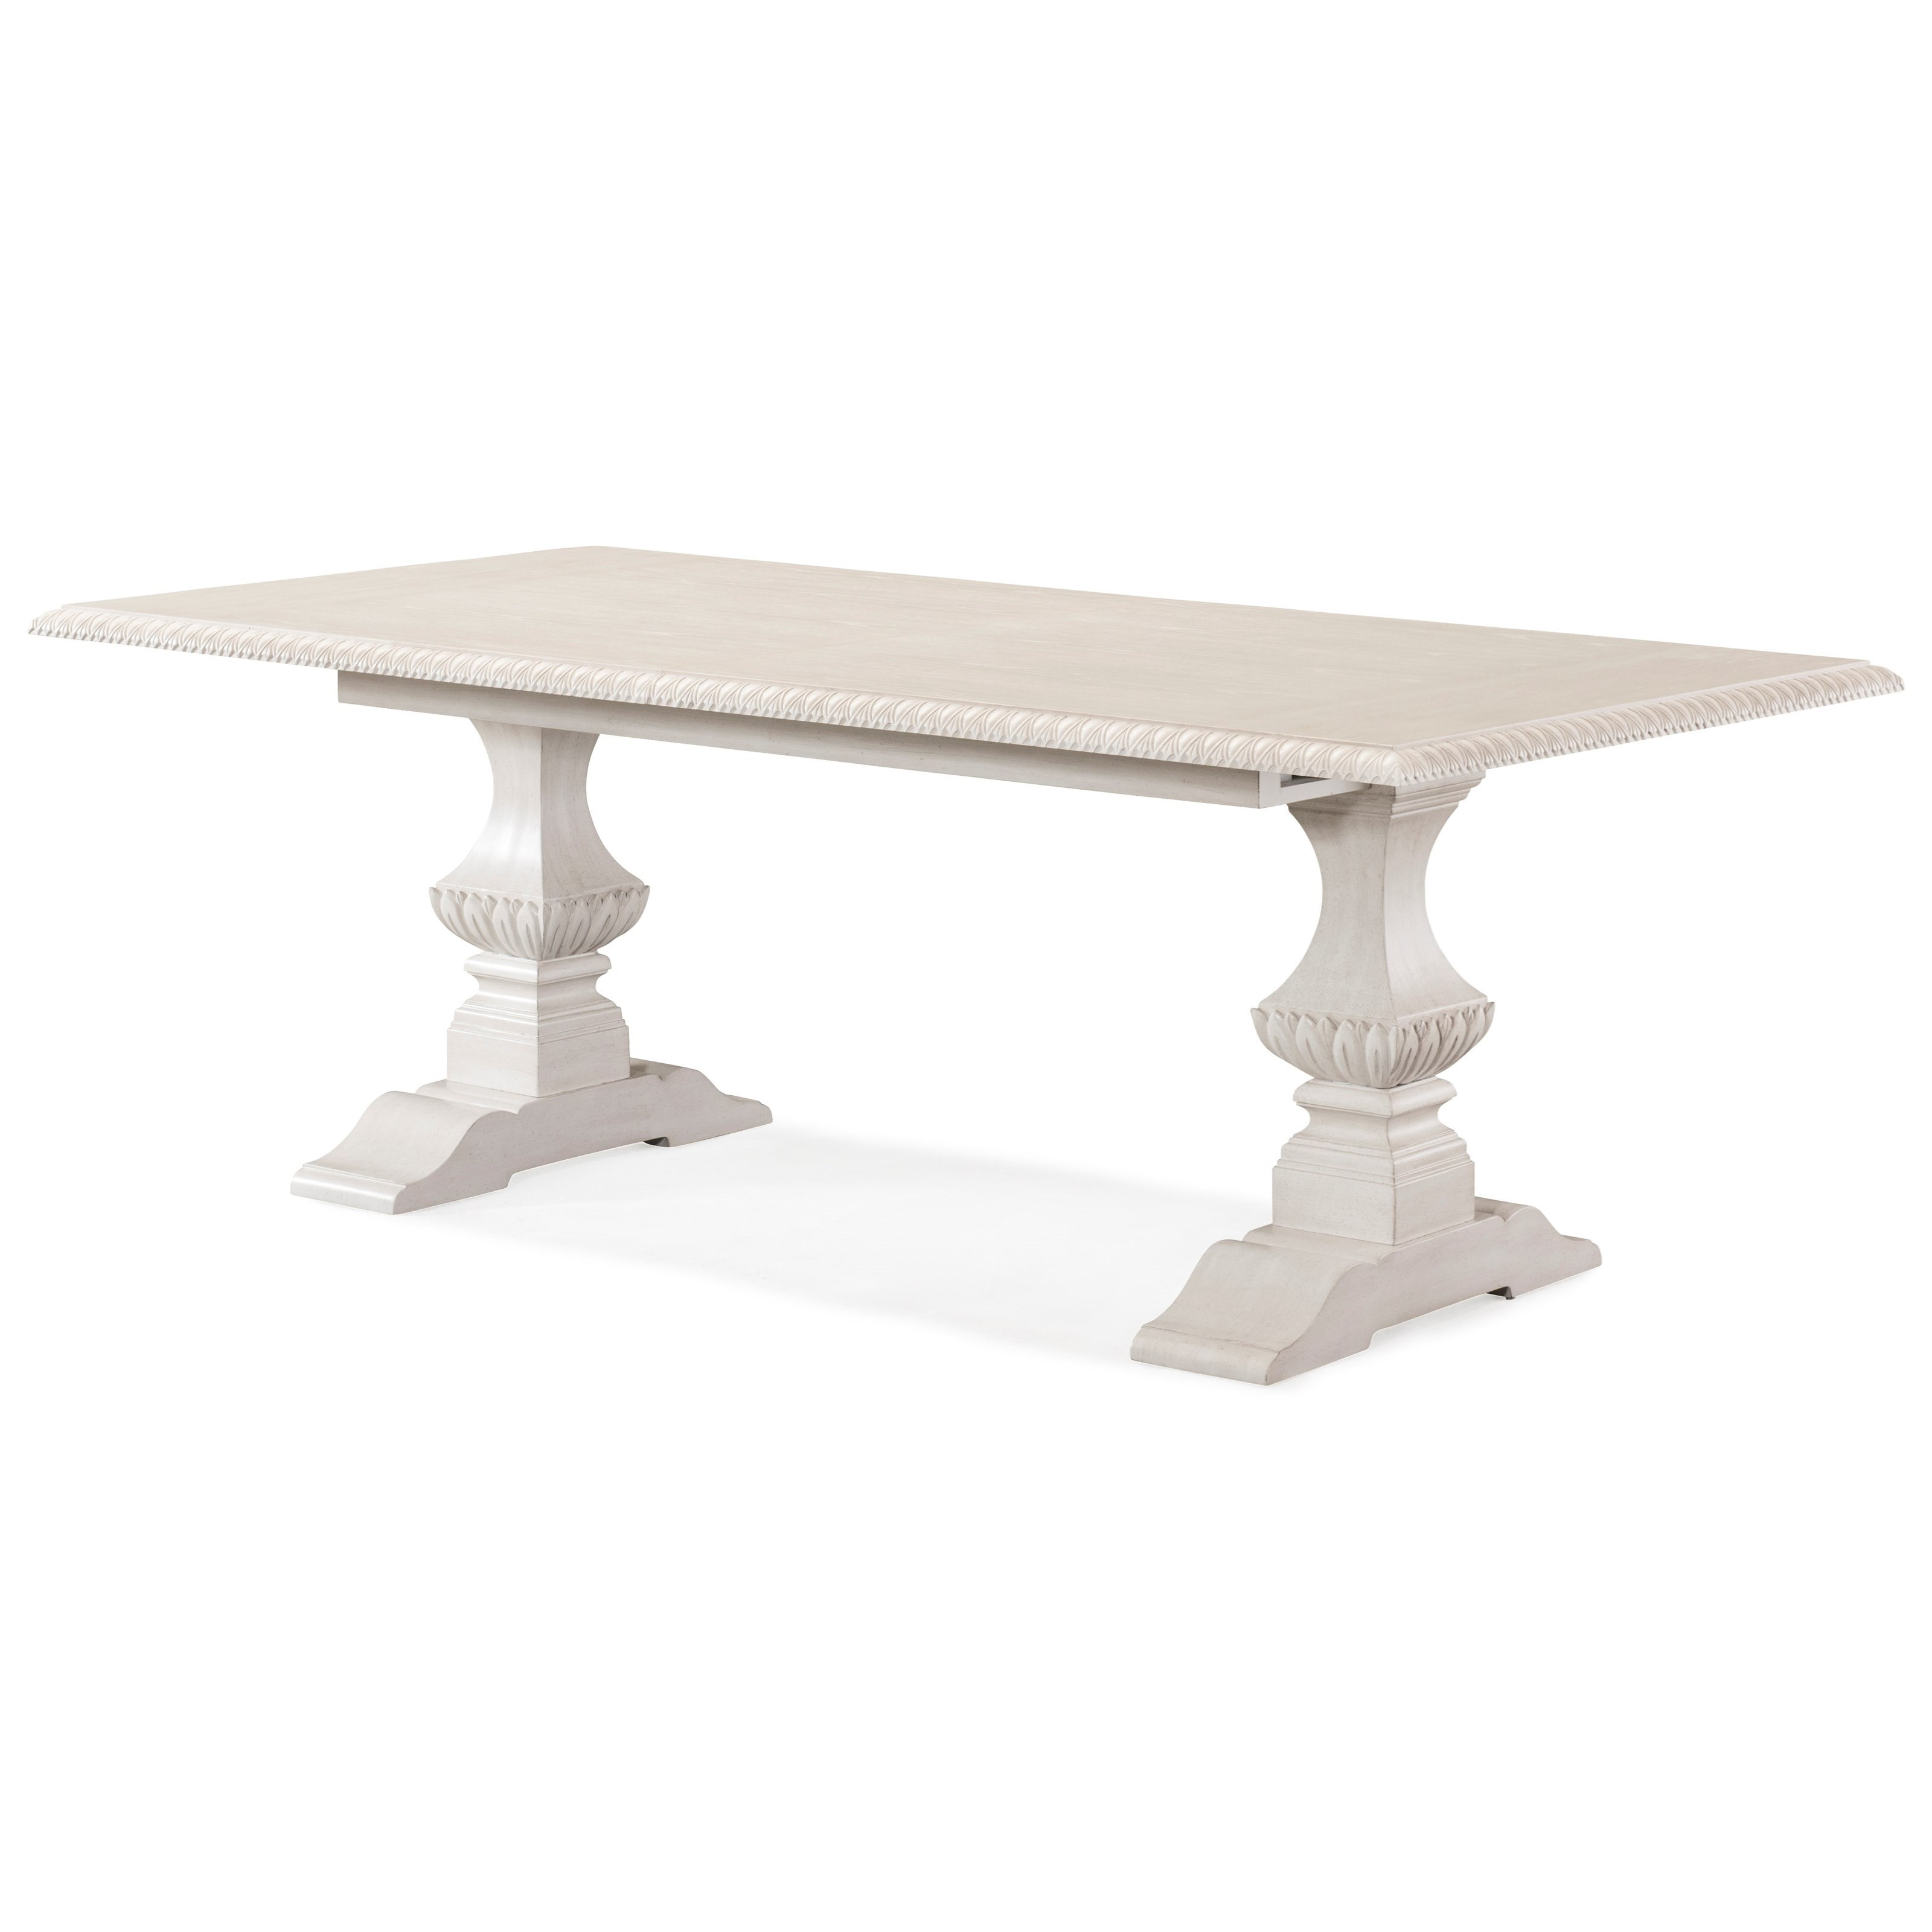 Jasper County Tillman Dining Room Table by Trisha Yearwood Home Collection by Klaussner at Darvin Furniture